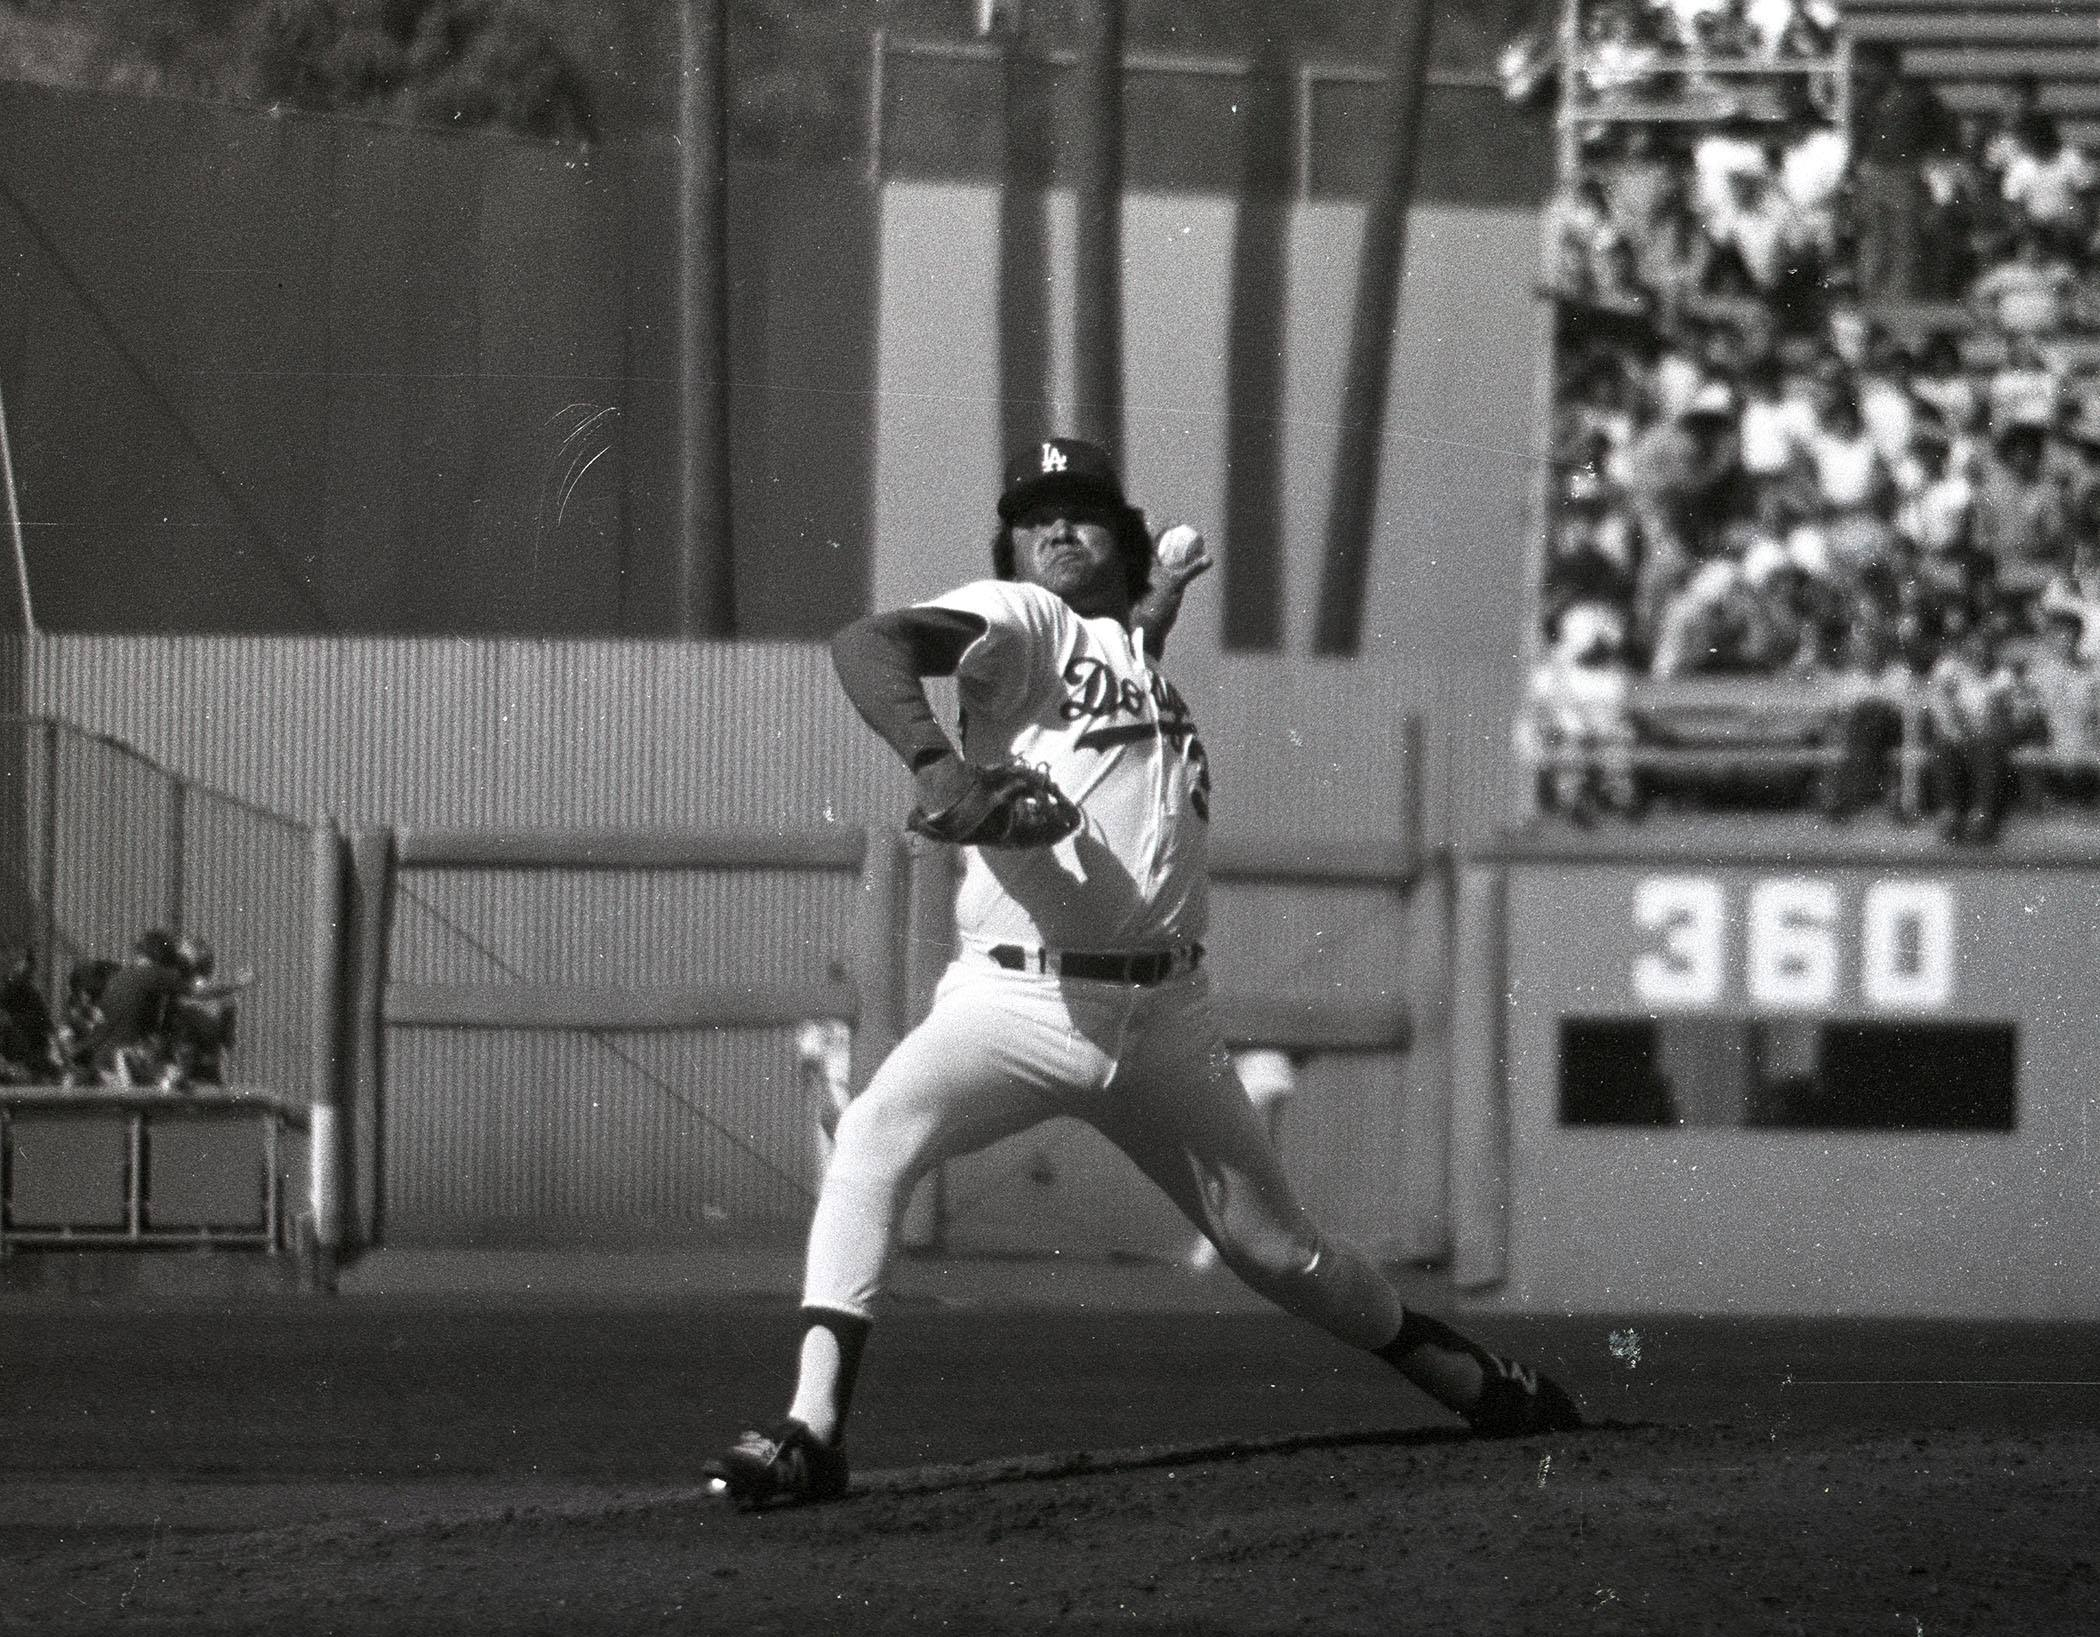 Fernando Valenzuela pitches in an exhibition game at Dodger Stadium in 1981